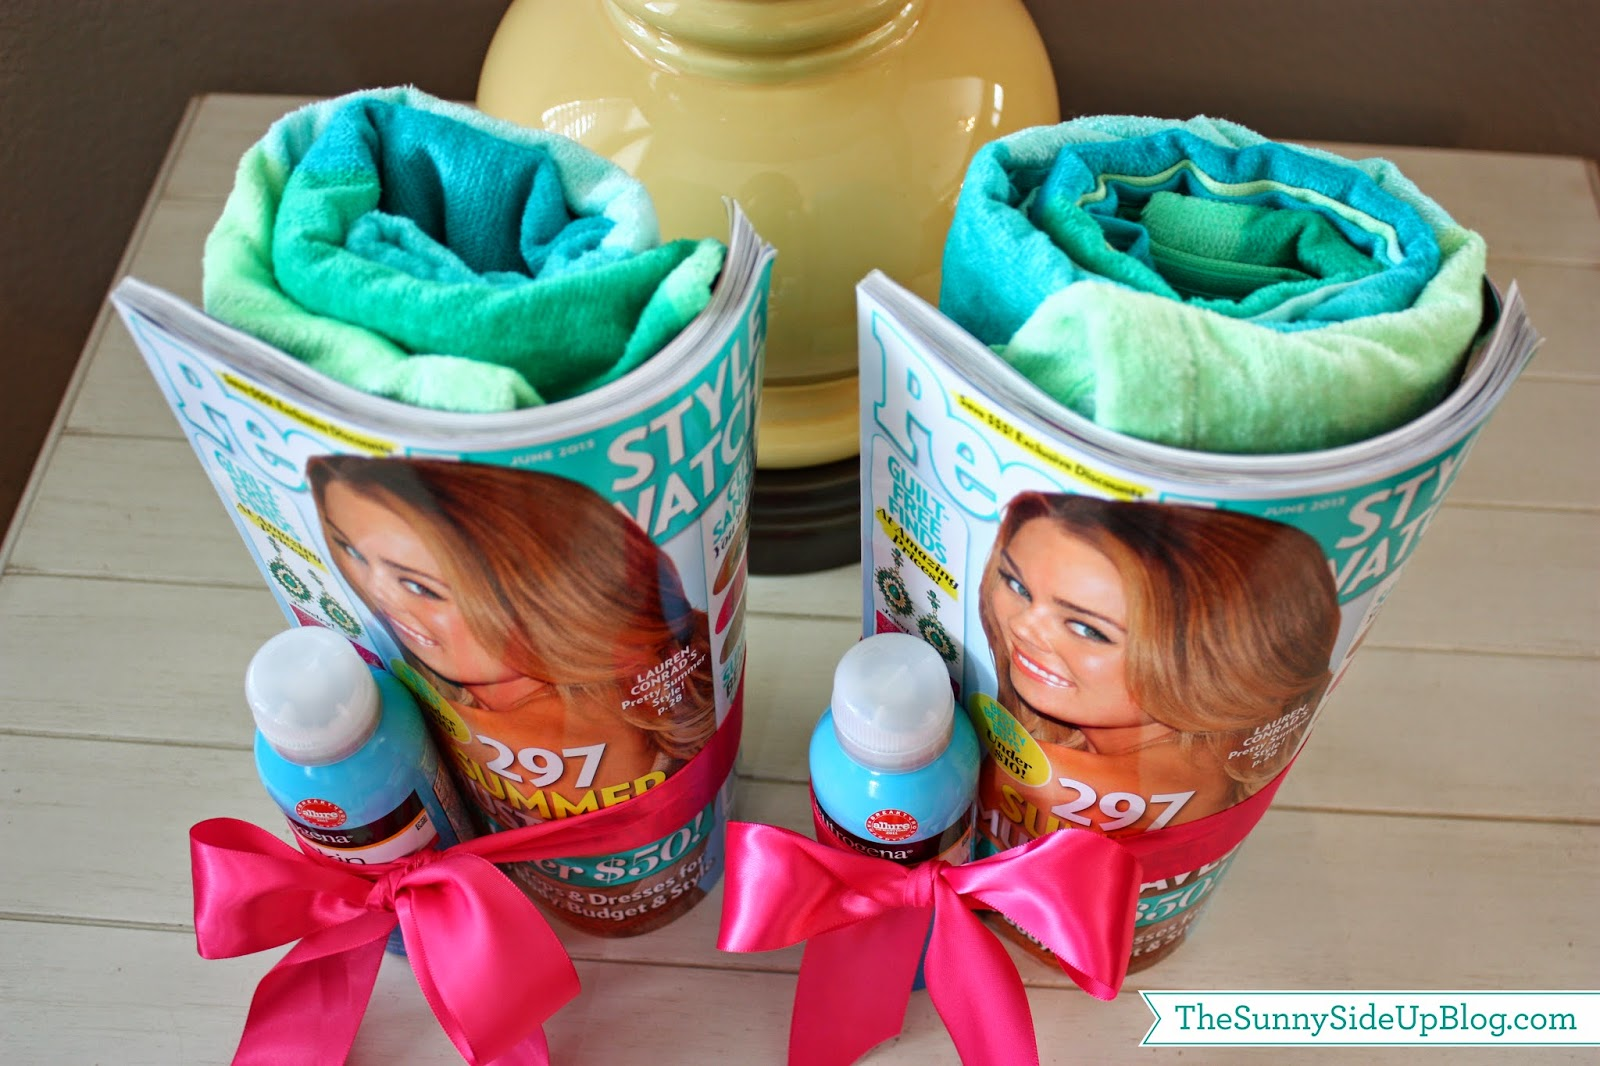 Pool Gift Ideas pool party 5th birthday t shirt I Just Rolled The Towels Up And Wrapped The Magazine Around Them And Tied It All With A Bow So Simple Ive Also Given A Gift Card To Get A Pedicure With